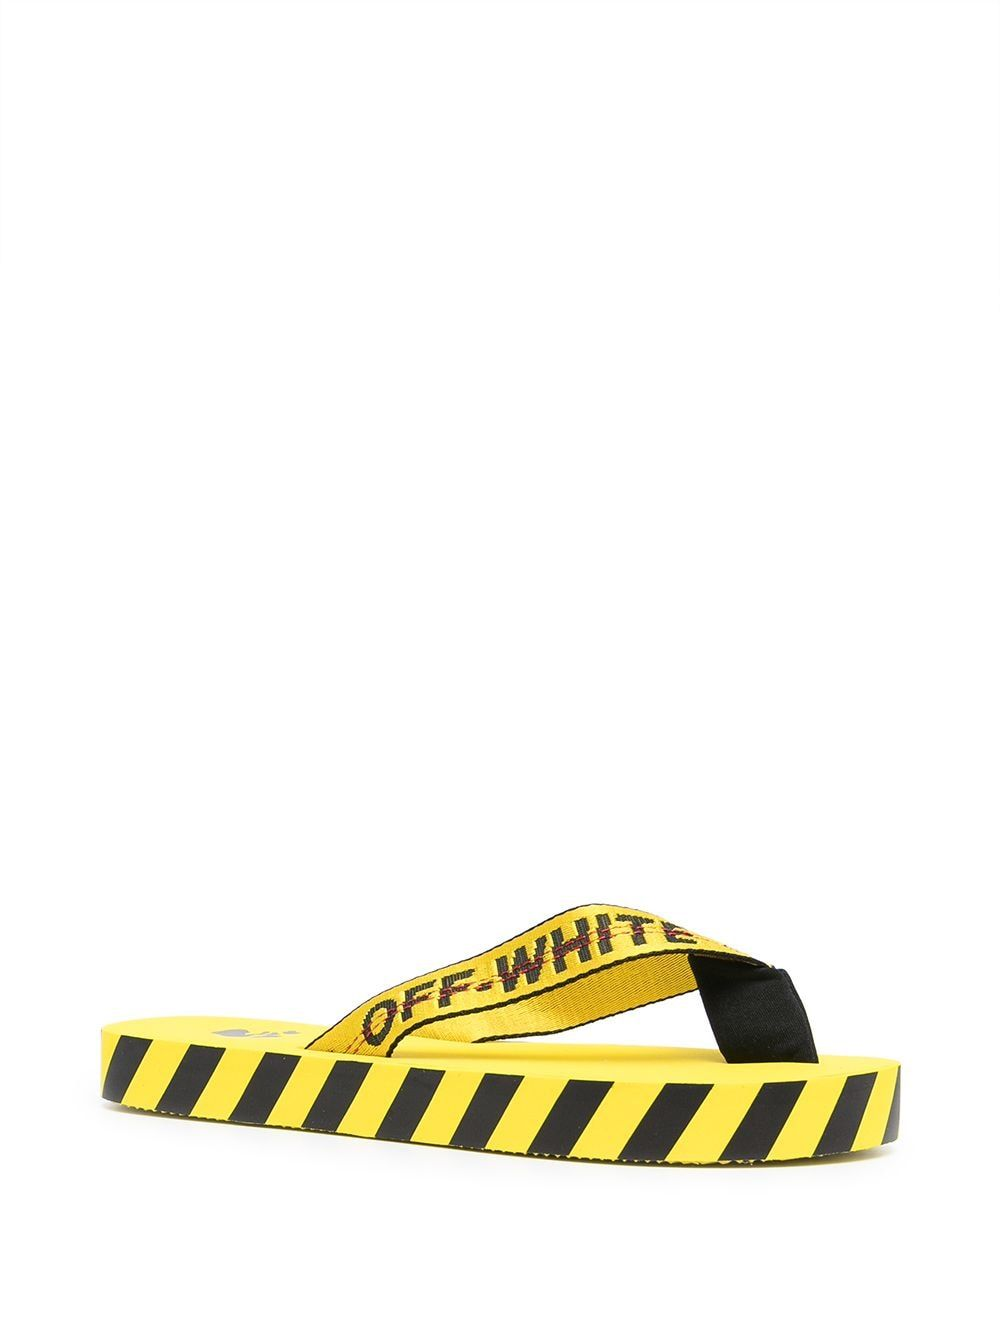 OFF-WHITE Flip flops OFF-WHITE MEN'S YELLOW RUBBER FLIP FLOPS